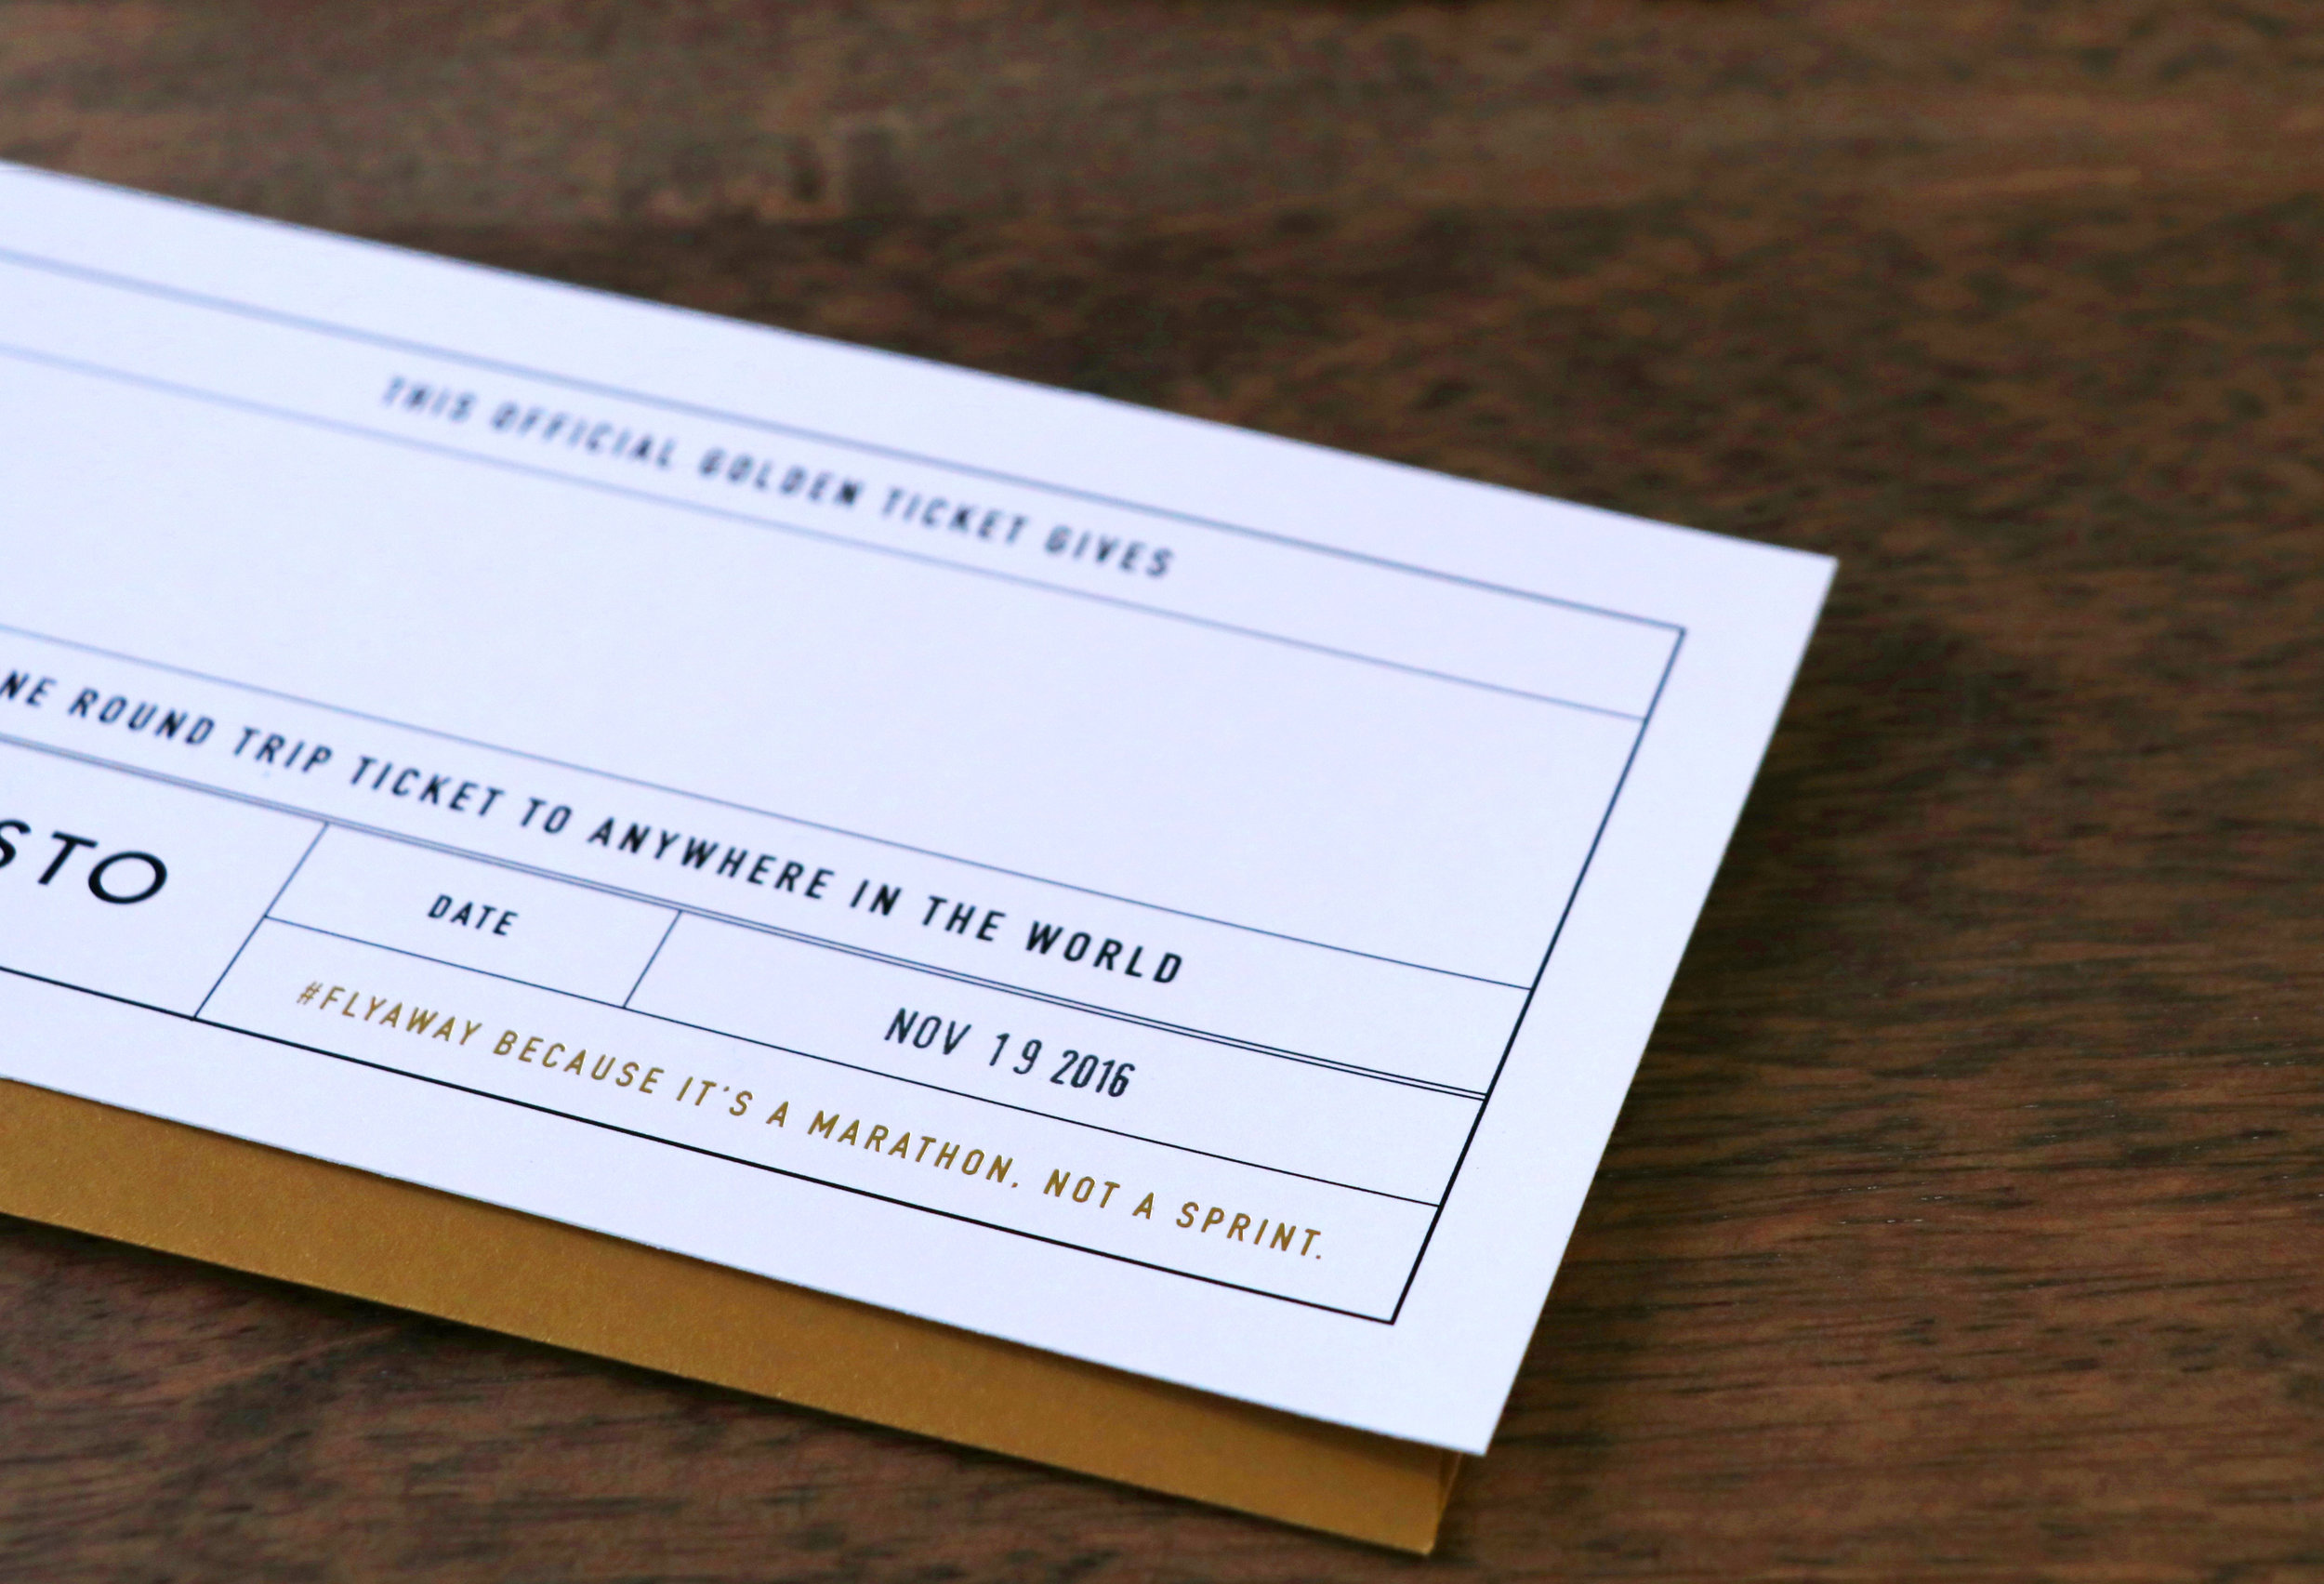 Tickets have a blank space for the recipient's name and a space for their anniversary date to be stamped.